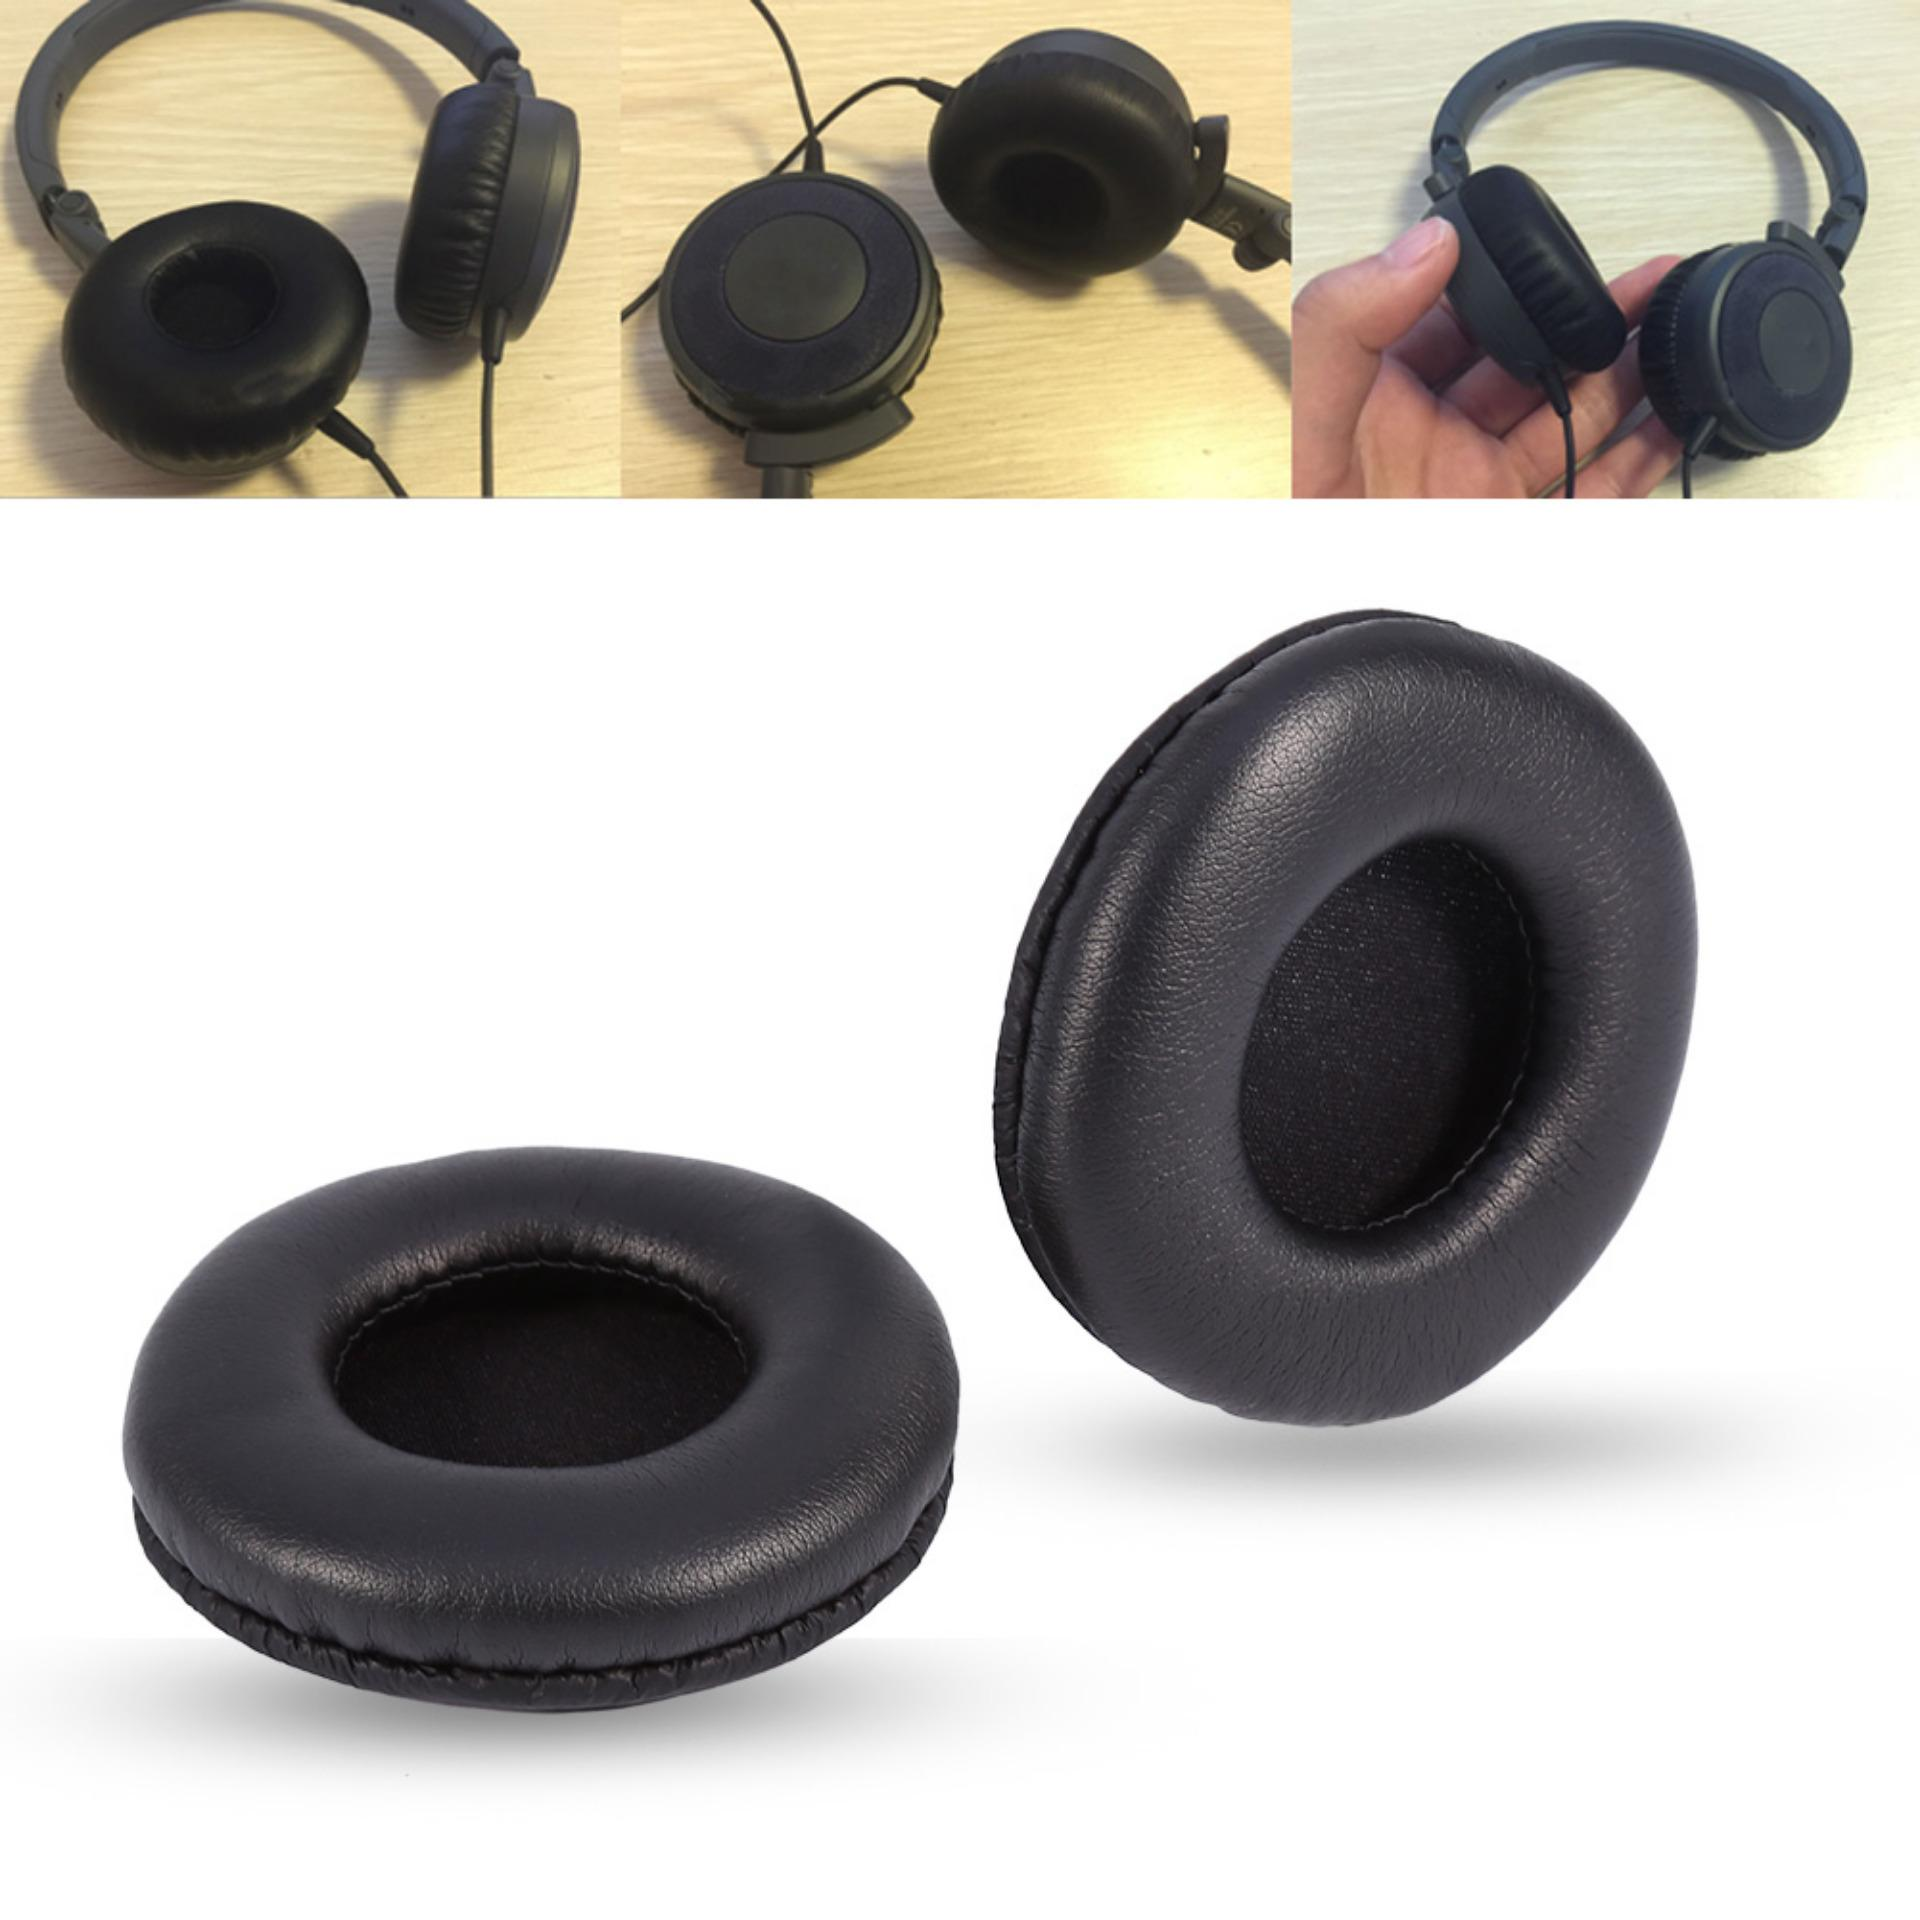 Buy Sell Cheapest Ear Pads Replacement Best Quality Product Deals Sennheiser Hd 280 Pro Headphone Hitam Earpad Bahan Kulit Lembut